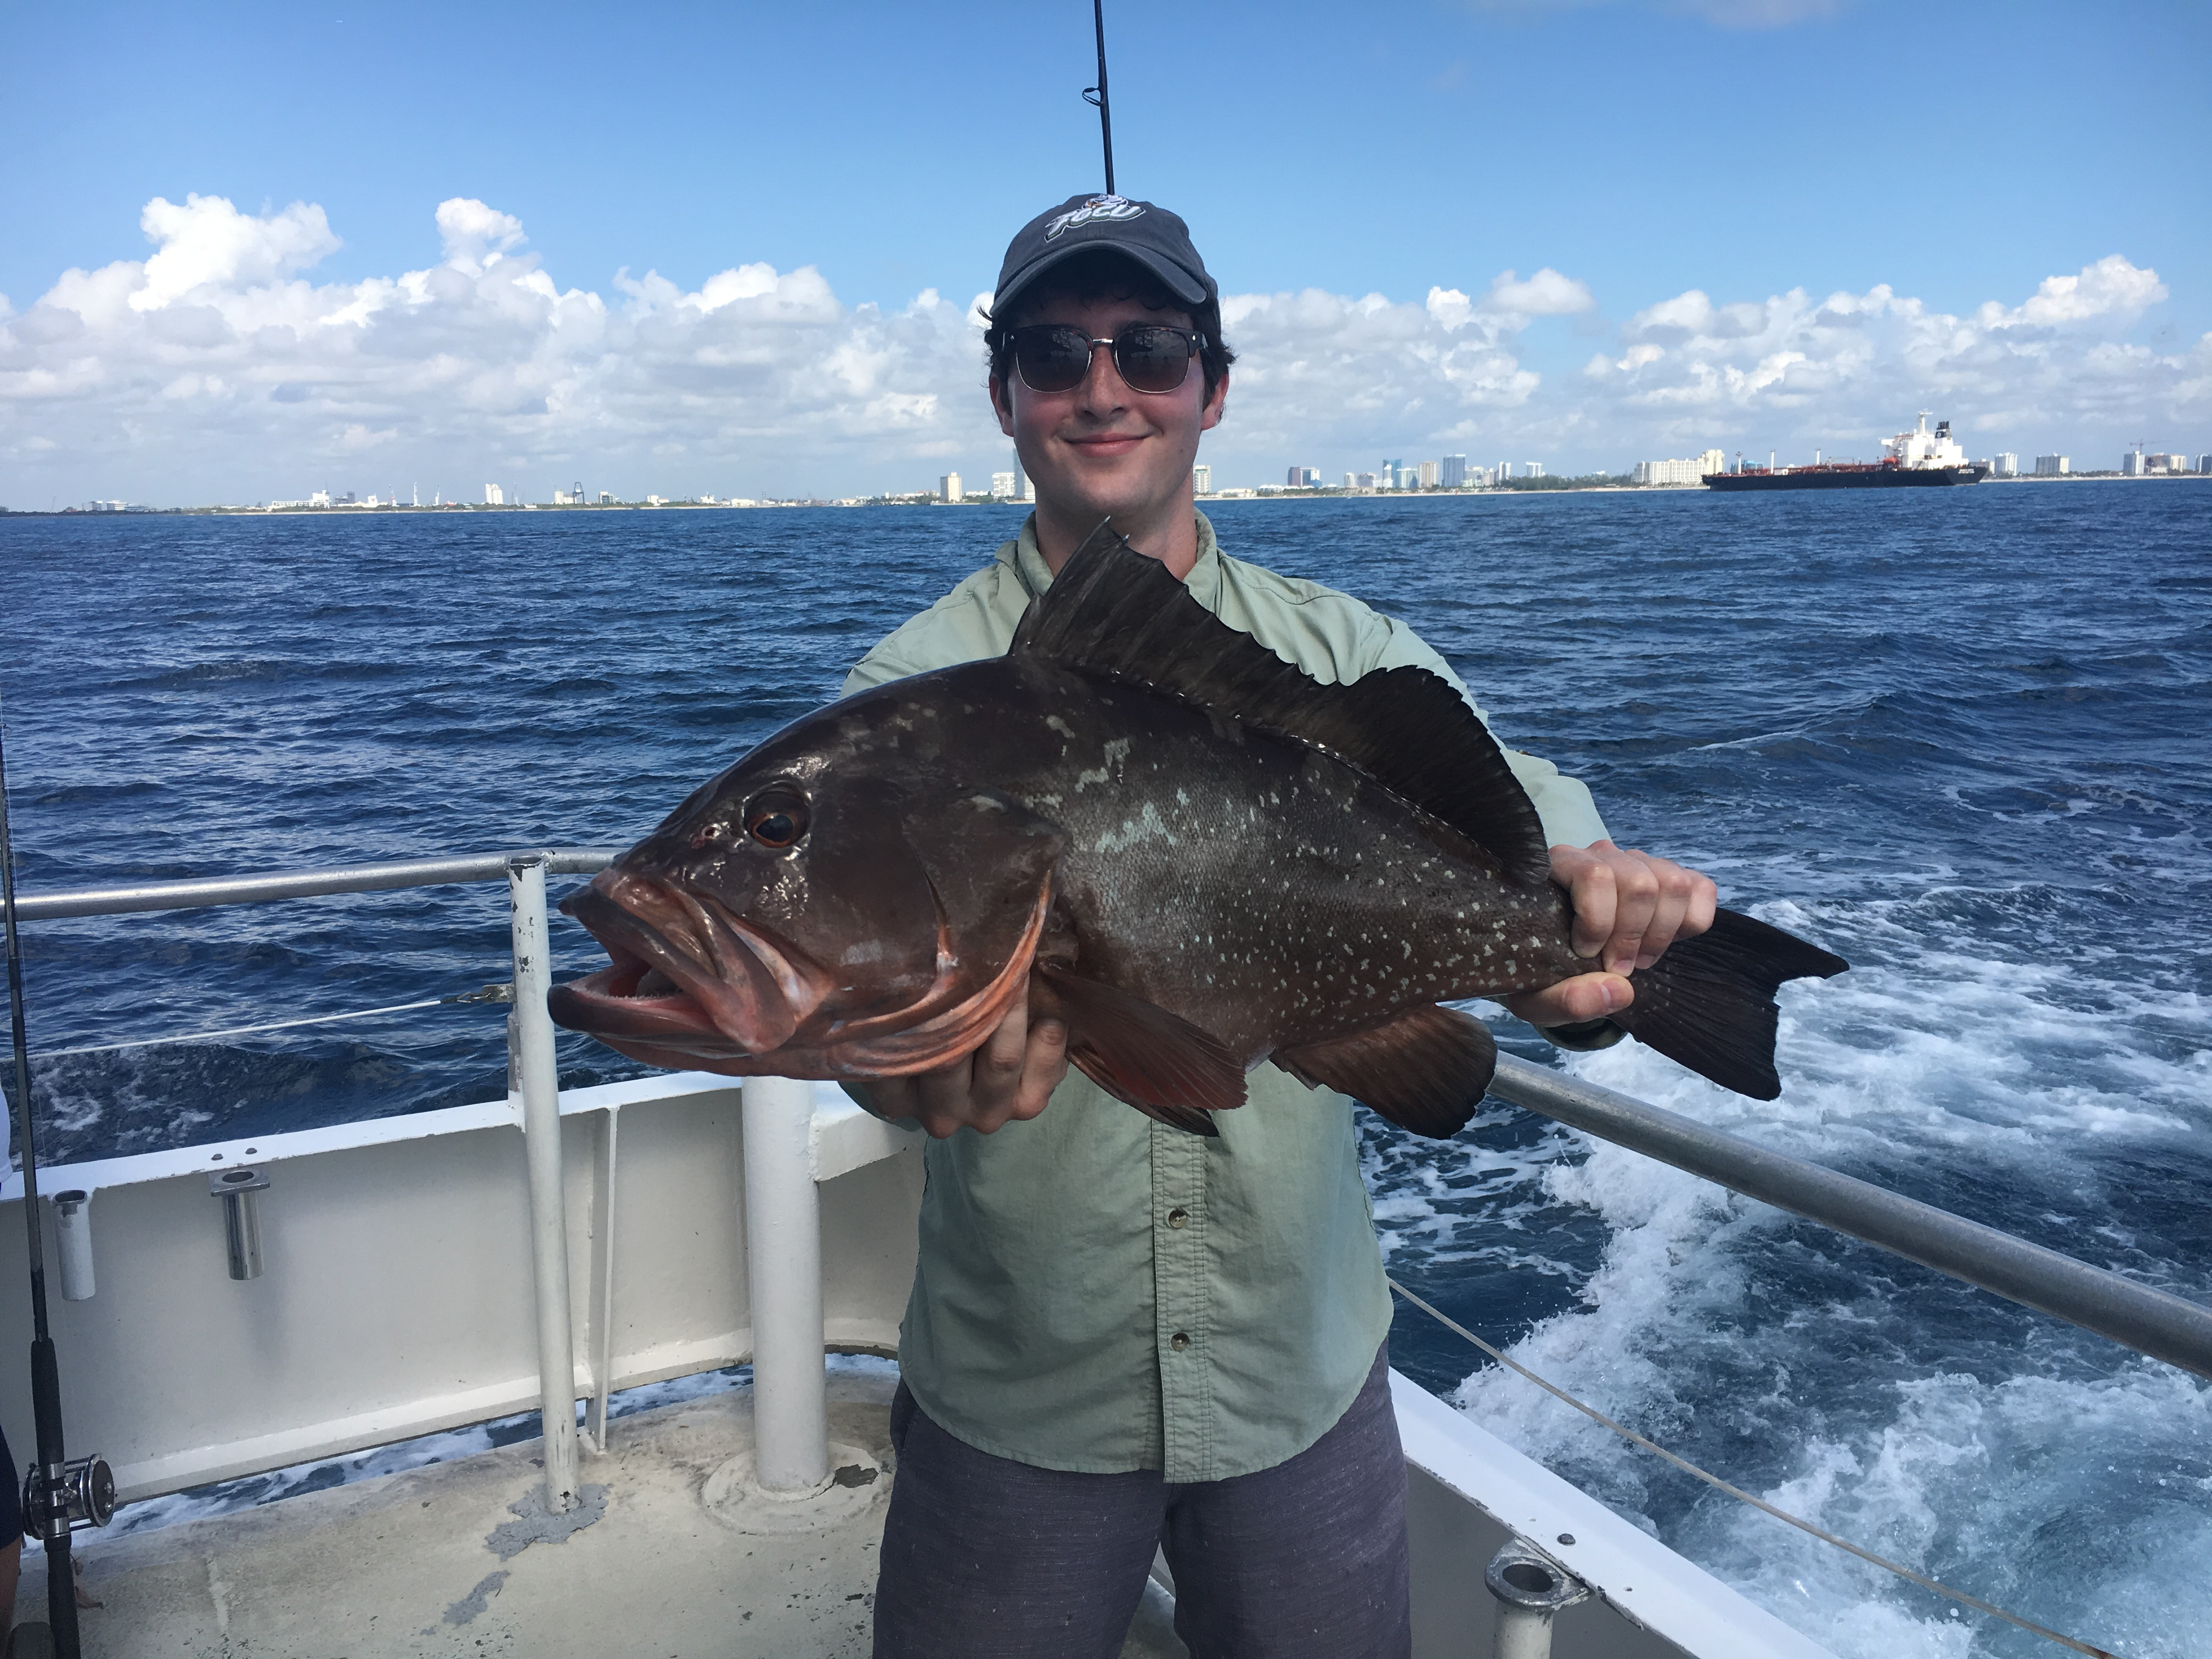 Fort lauderdale fishing report fishing headquarters for Fishing spots in fort lauderdale